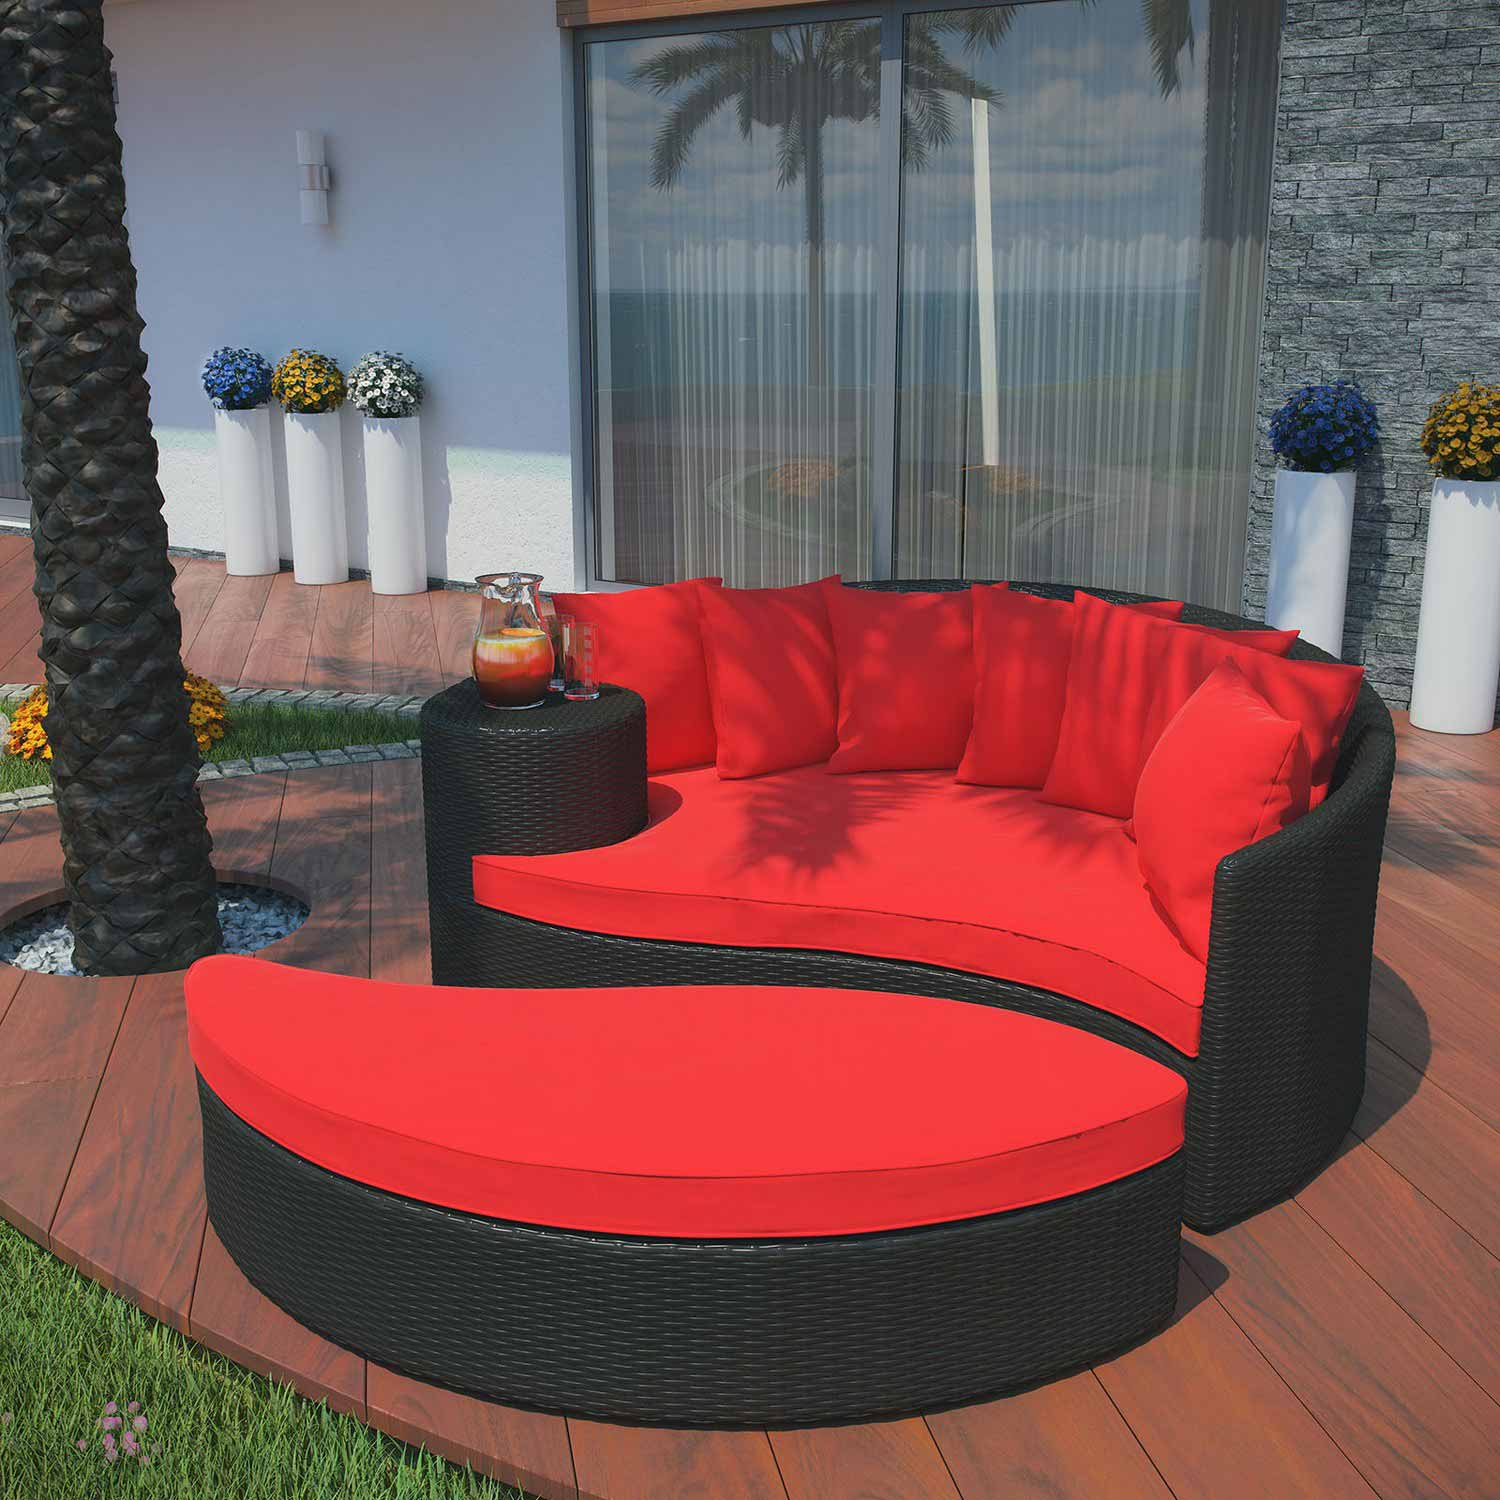 Modway Taiji Outdoor Patio Daybed - Espresso/Red